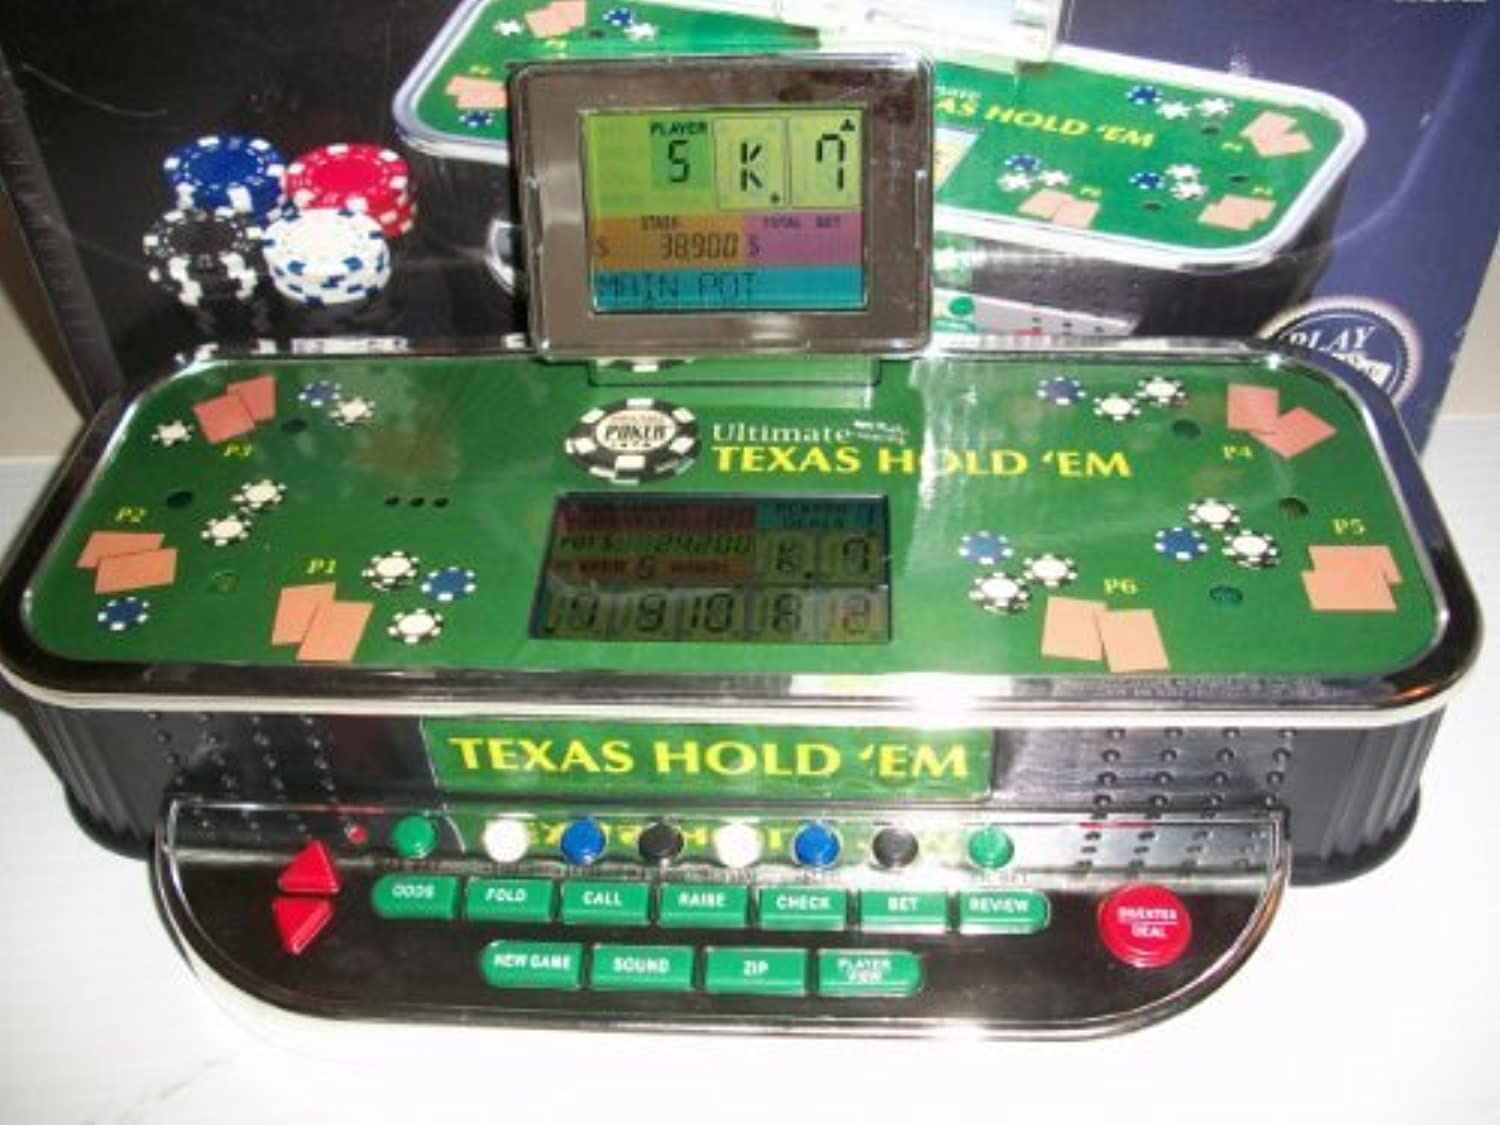 ULTIMATE TEXAS HOLD'EM ELECTRONIC TALKING TABLETOP GAME (NEW IN BOX!) by Excalibur [並行輸入品]